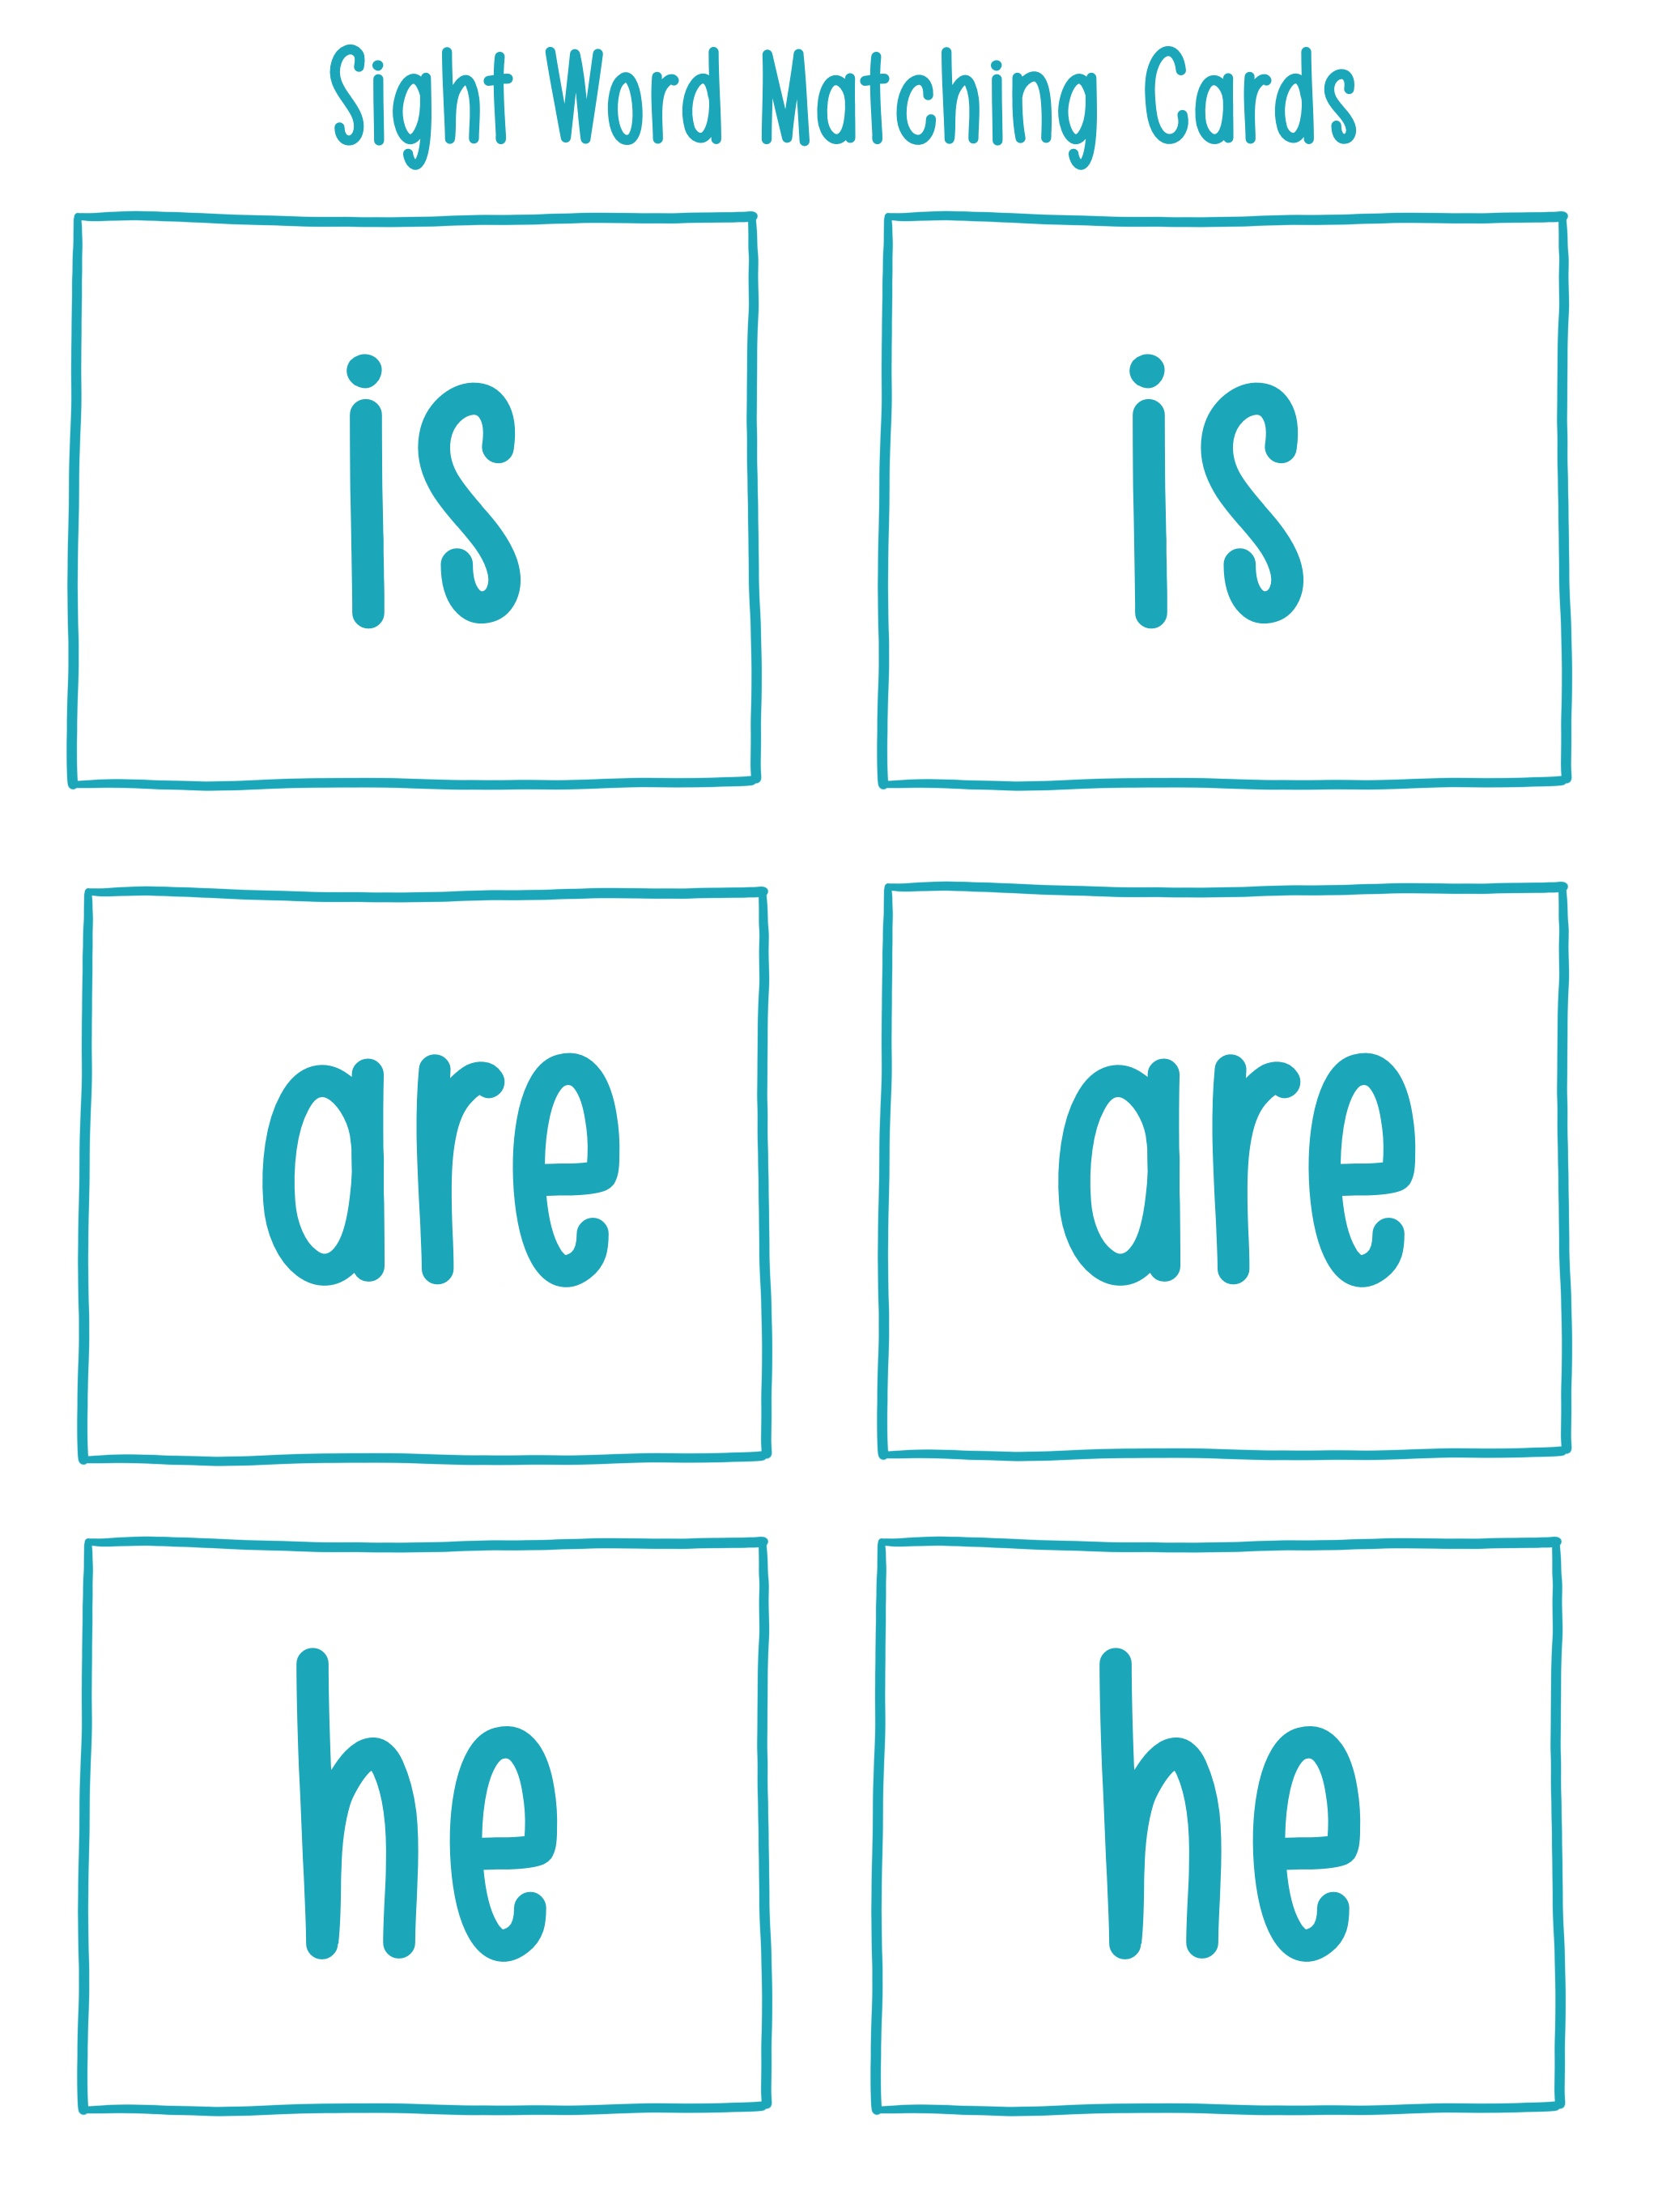 Sight Word Matching Cards.jpg